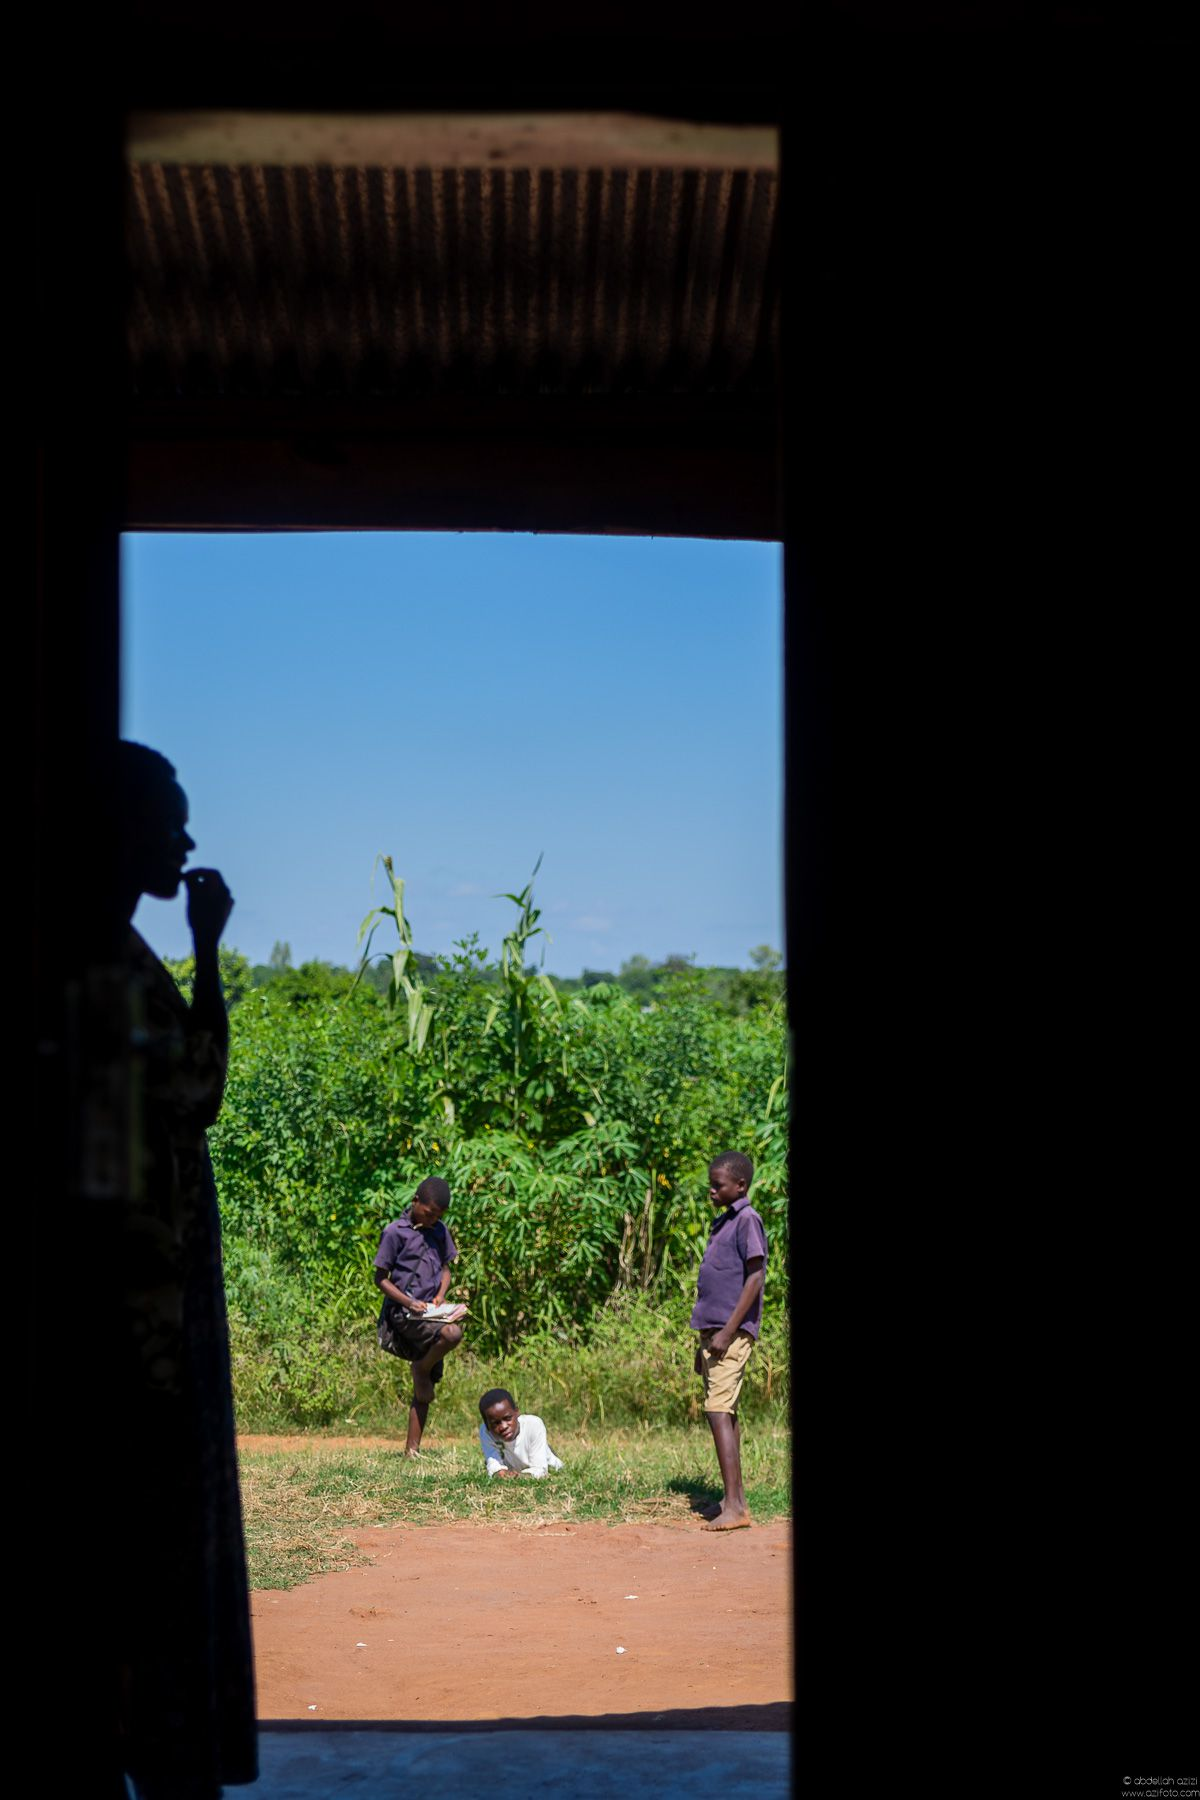 School boys in Malawi